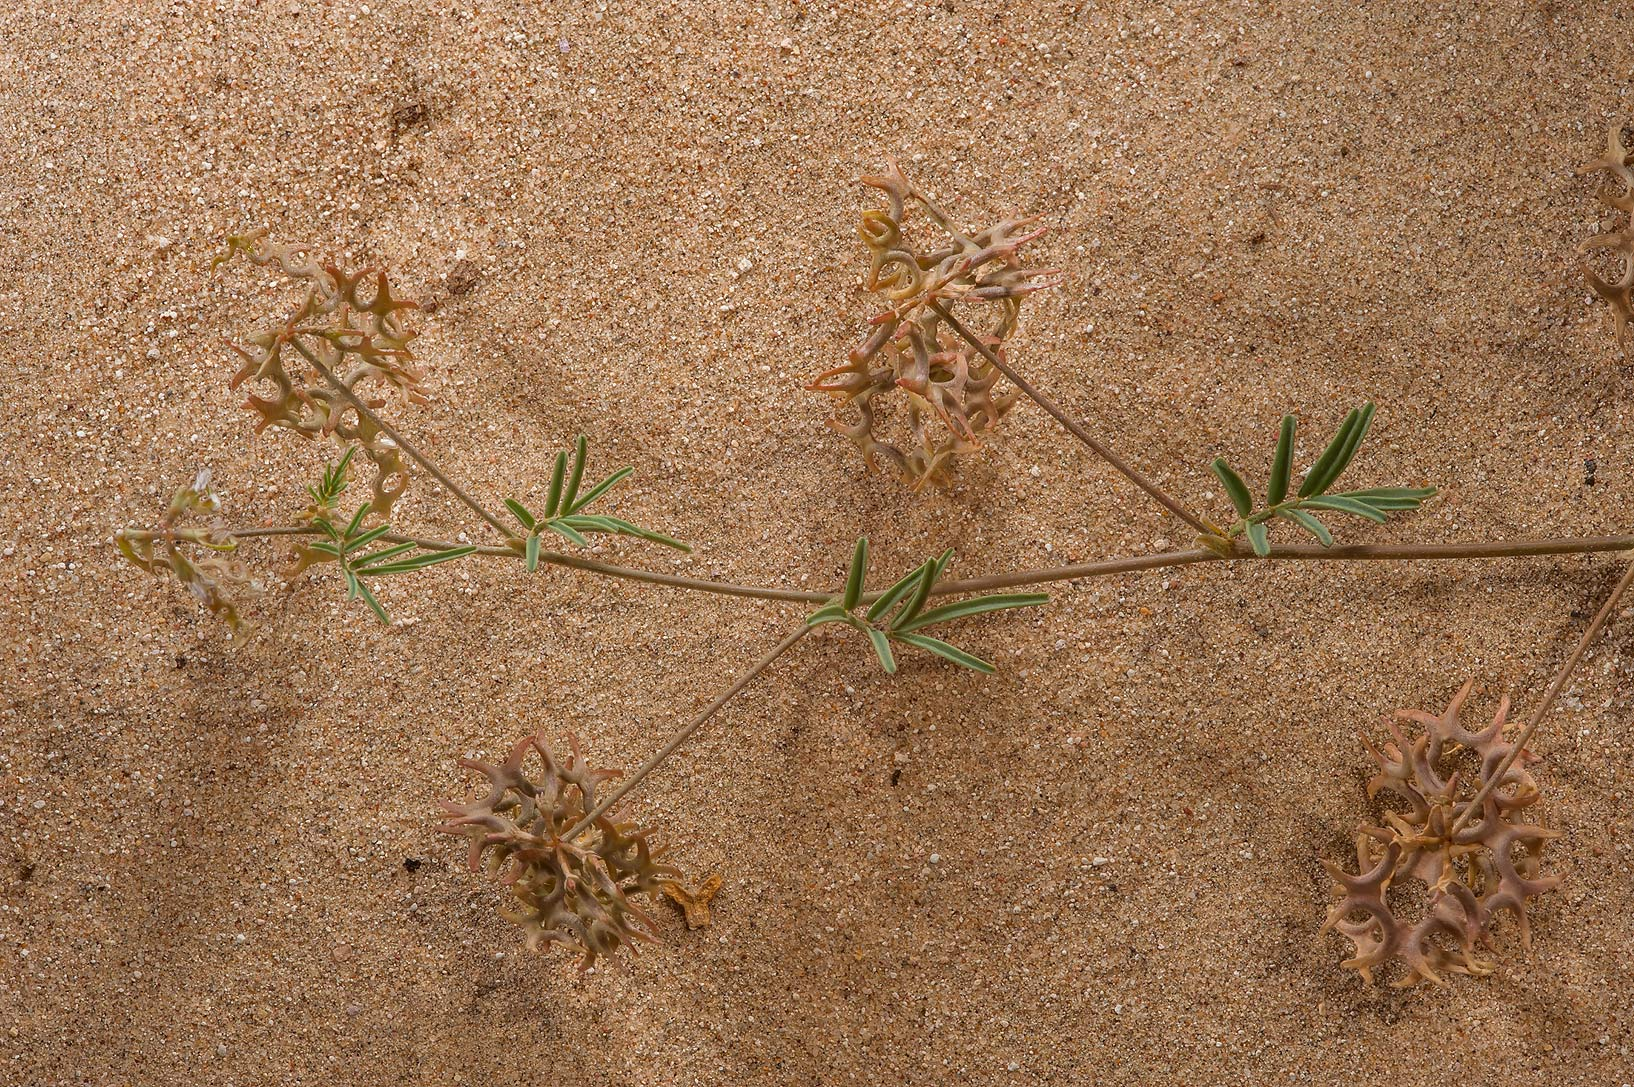 Shoot of Horseshoe vetch (Hippocrepis bicontorta...of Khashem Al Nekhsh. Southern Qatar